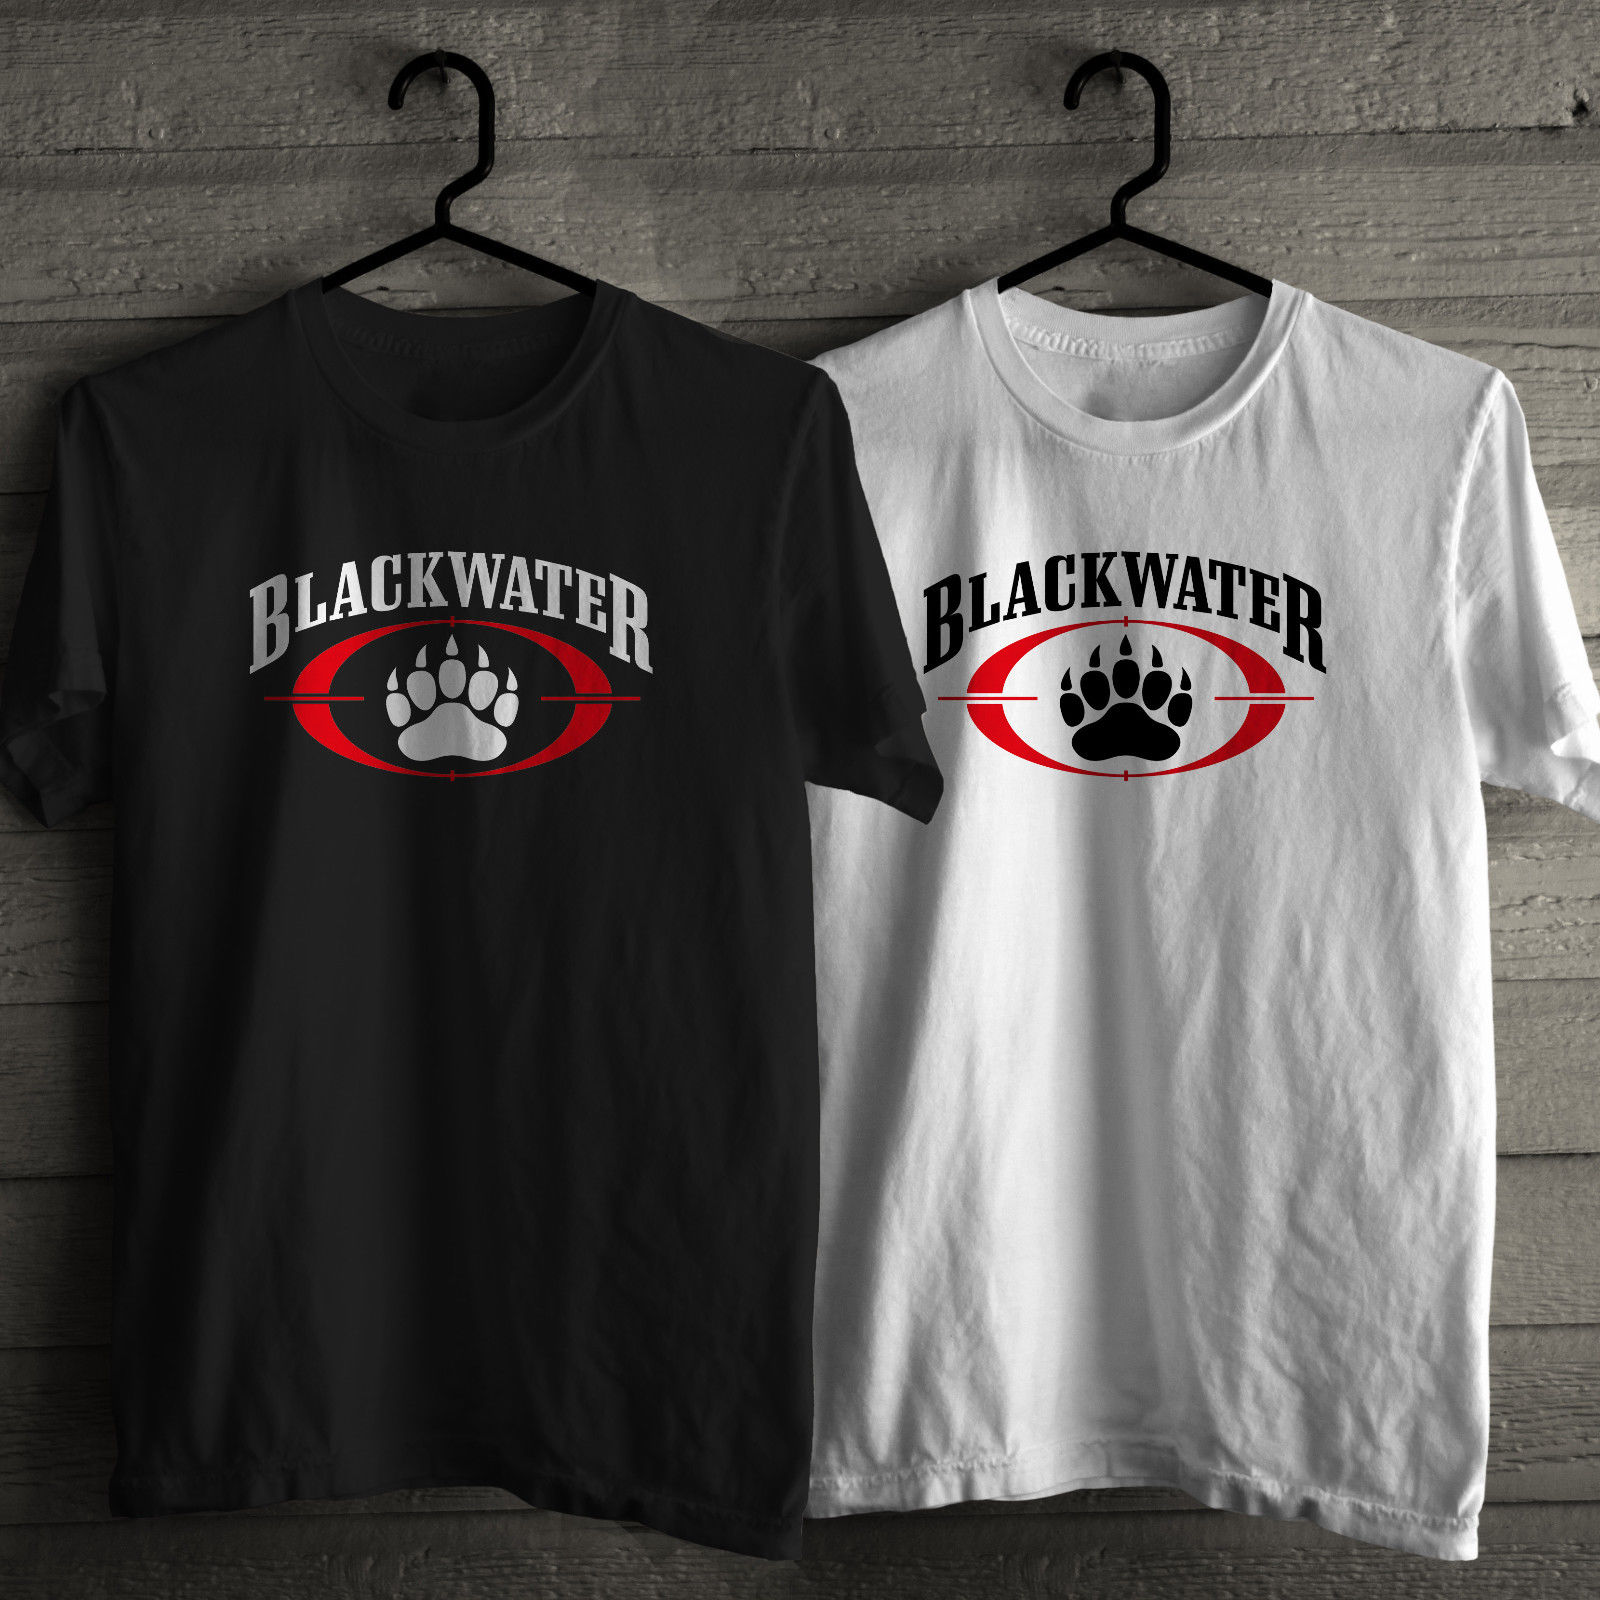 Black t shirt security - Blackwater Custom Made Good Quality T Shirt Private Security Company Short Sleeve Black Or White